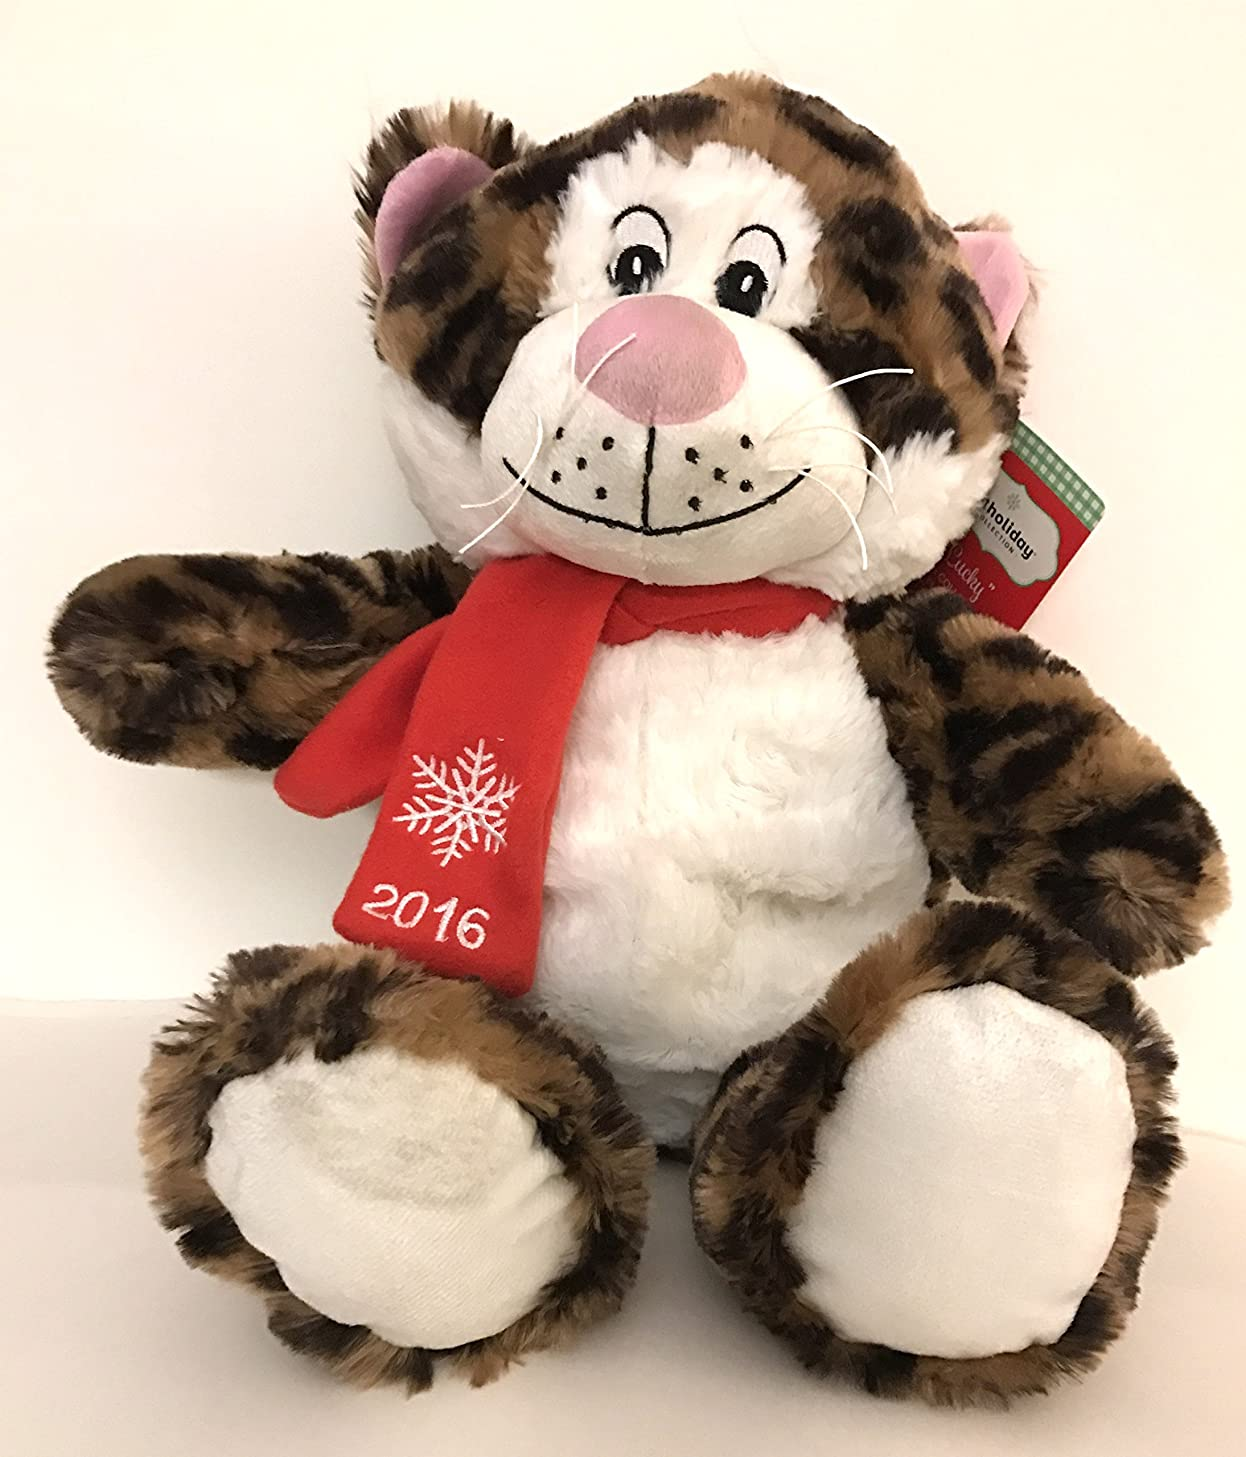 Lucky Plush Animal Pet Squeaky Large Holiday Toy Collectible 2016 Cat Tiger 17